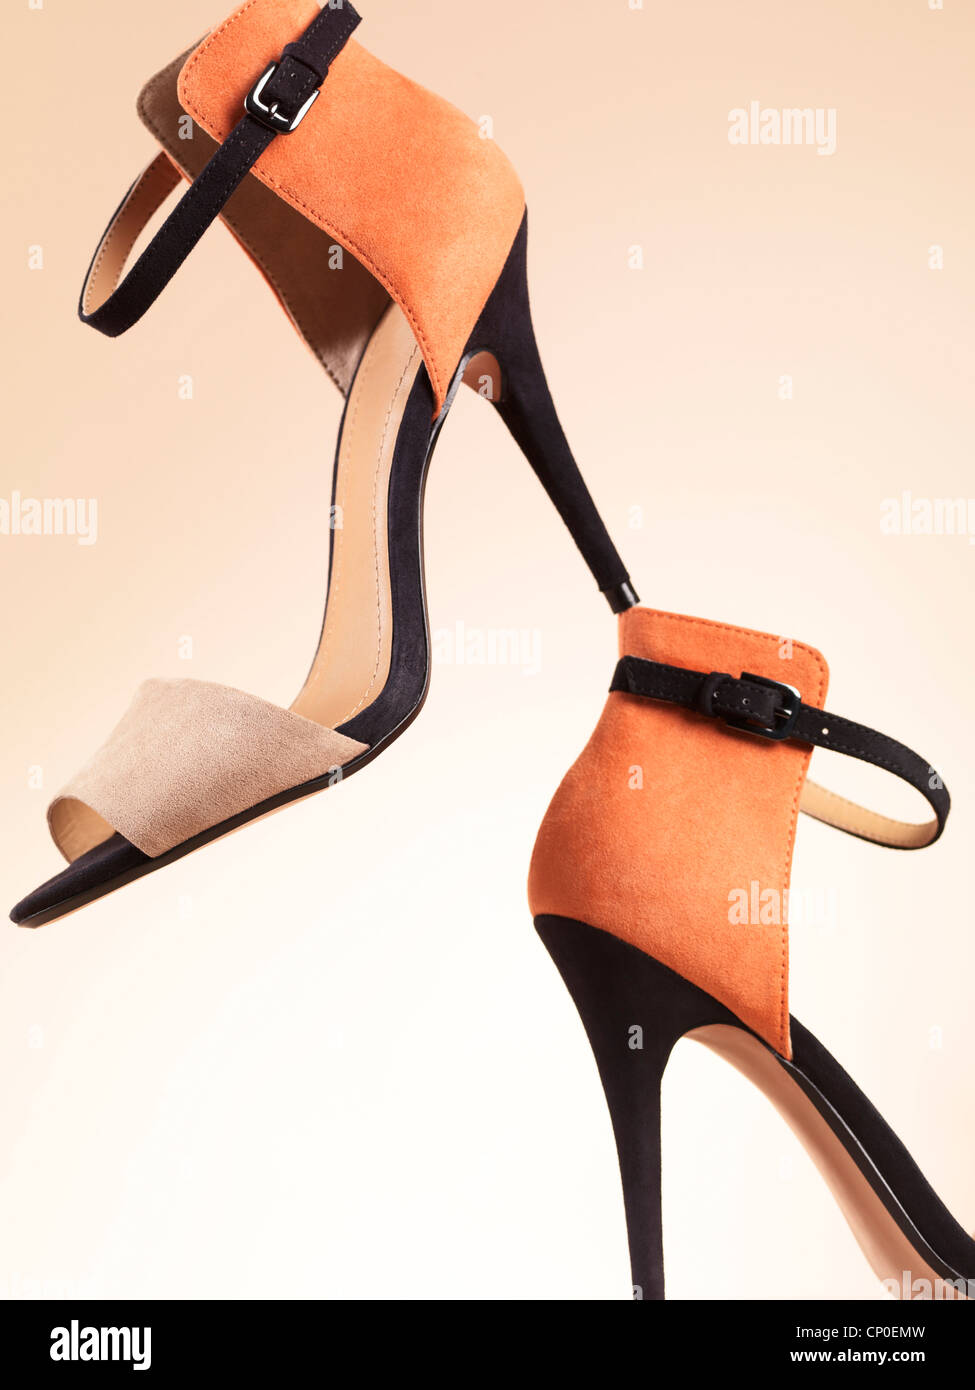 Artistic still life of a pair of fancy open-toe high heel shoes isolated on beige background - Stock Image